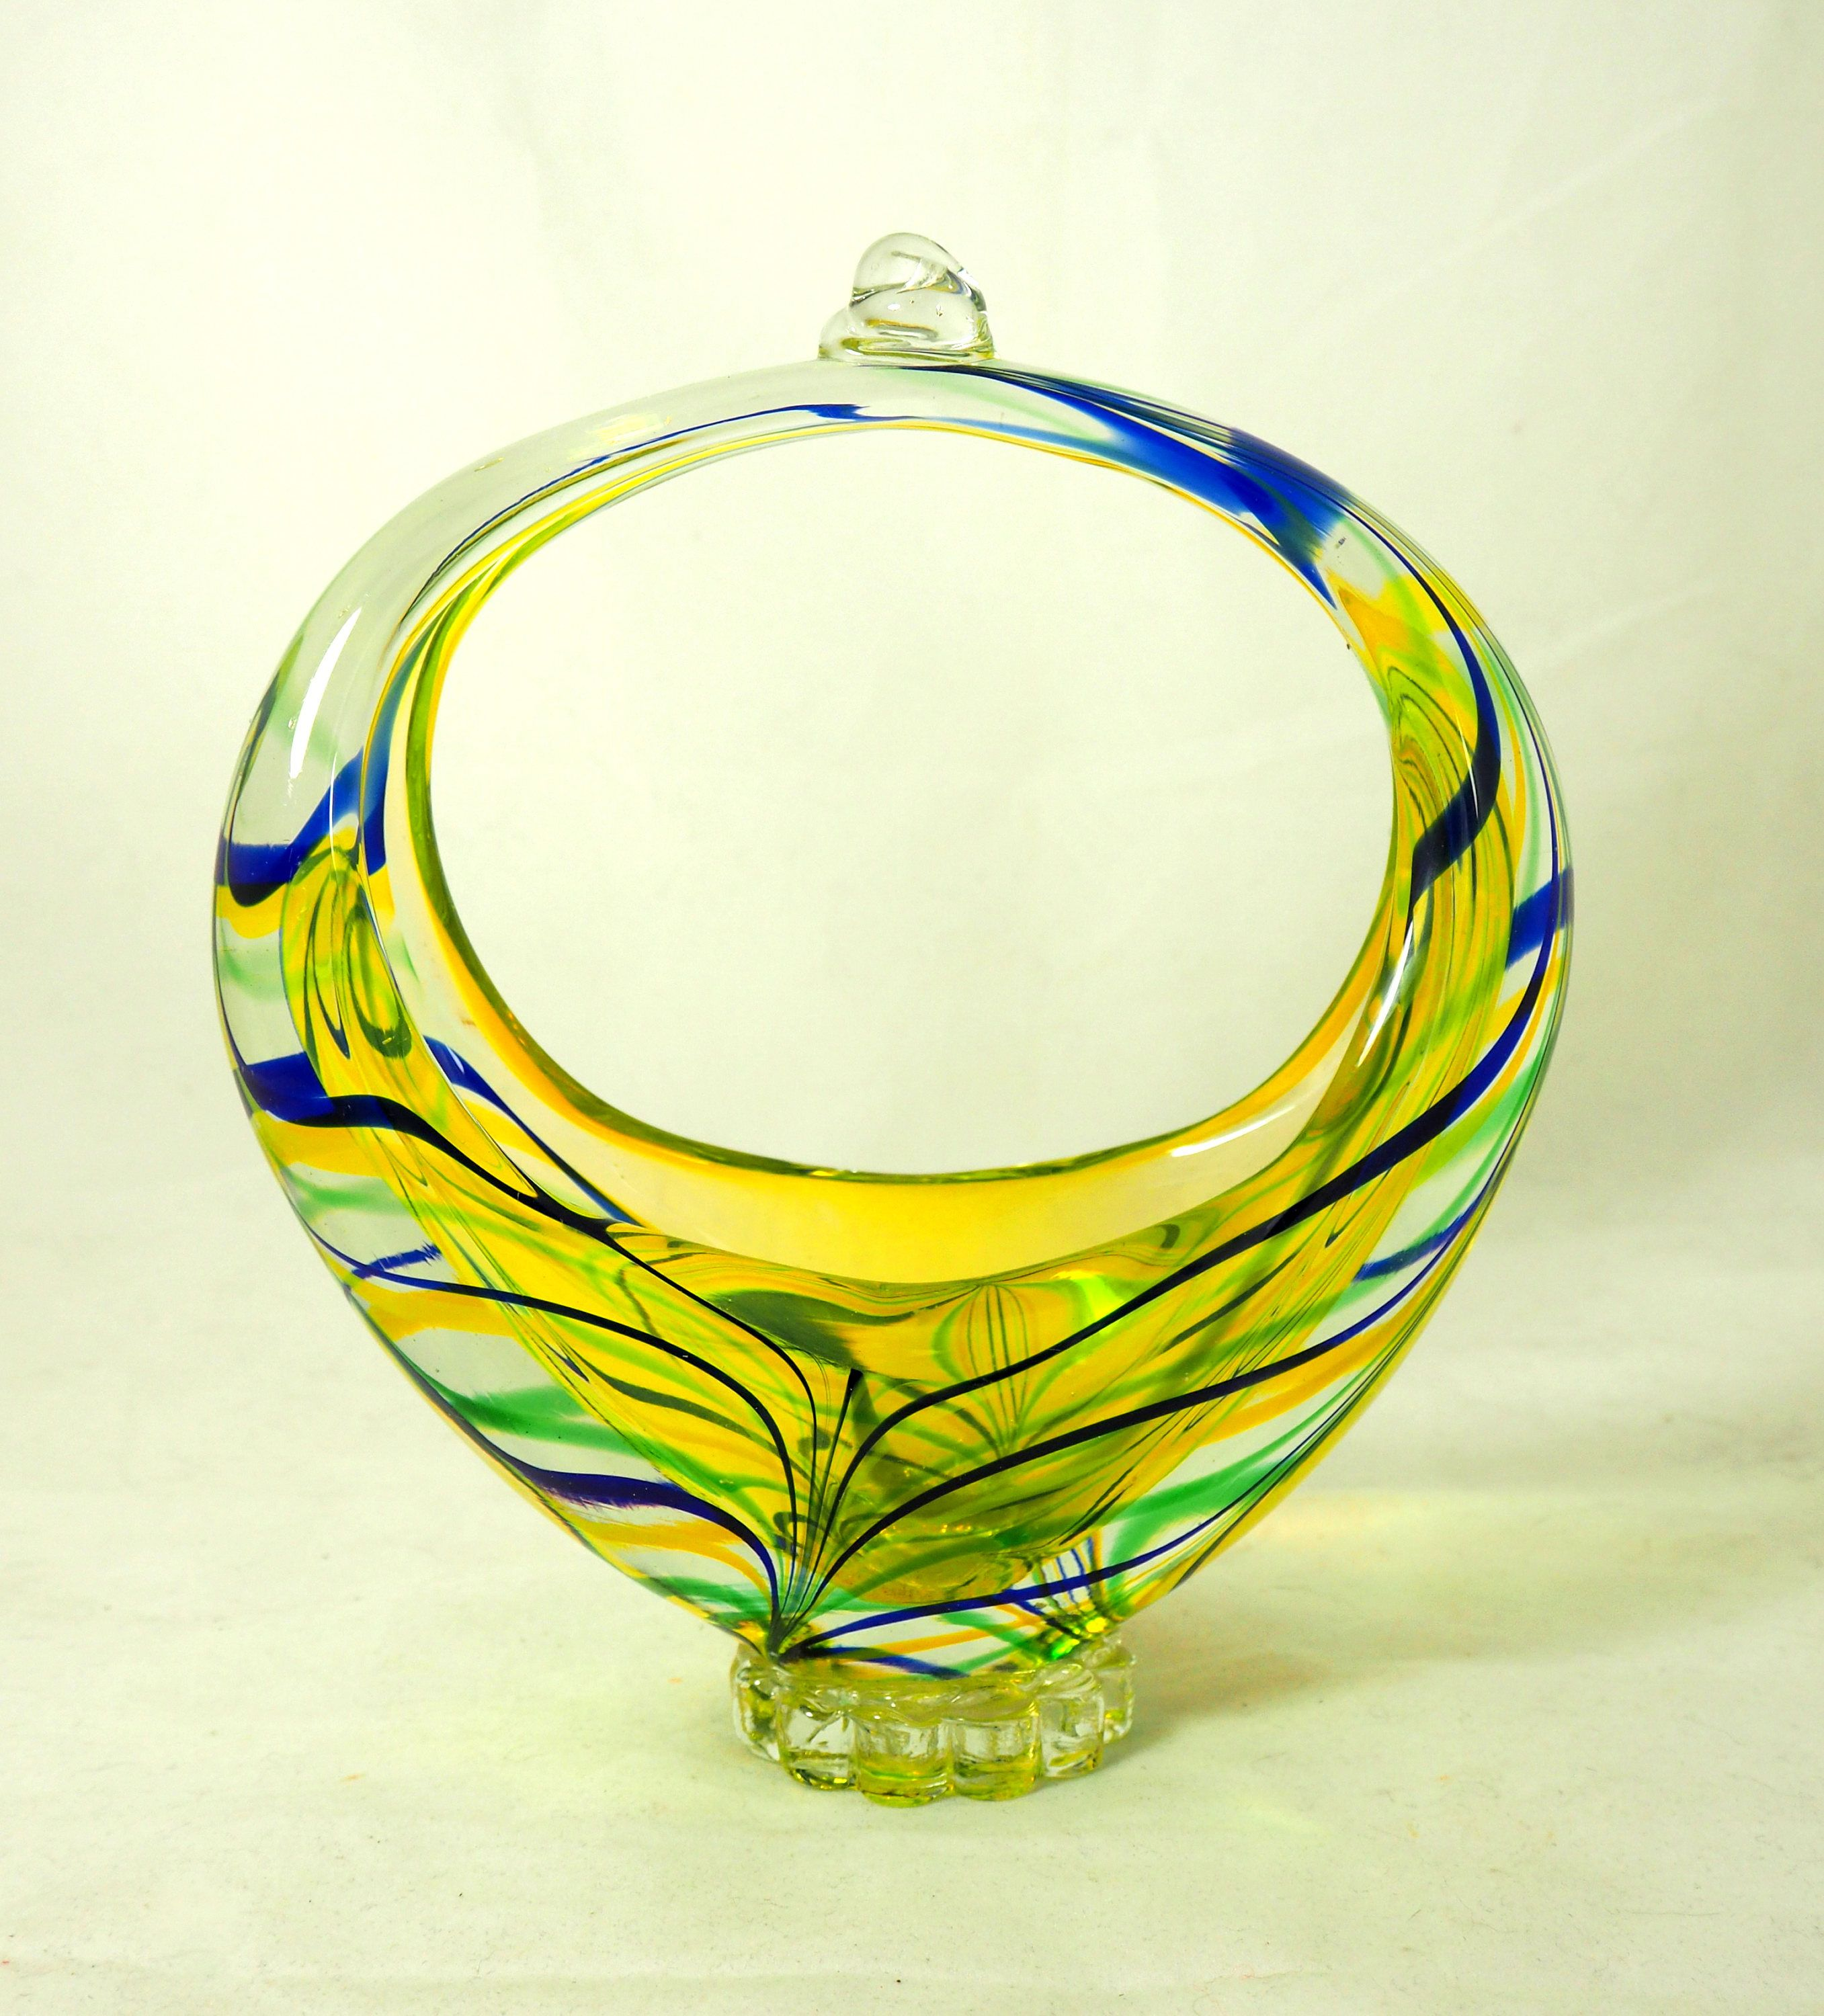 Vintage Murano Basket Vase, Mid-Century Sommerso Large Handblown ...